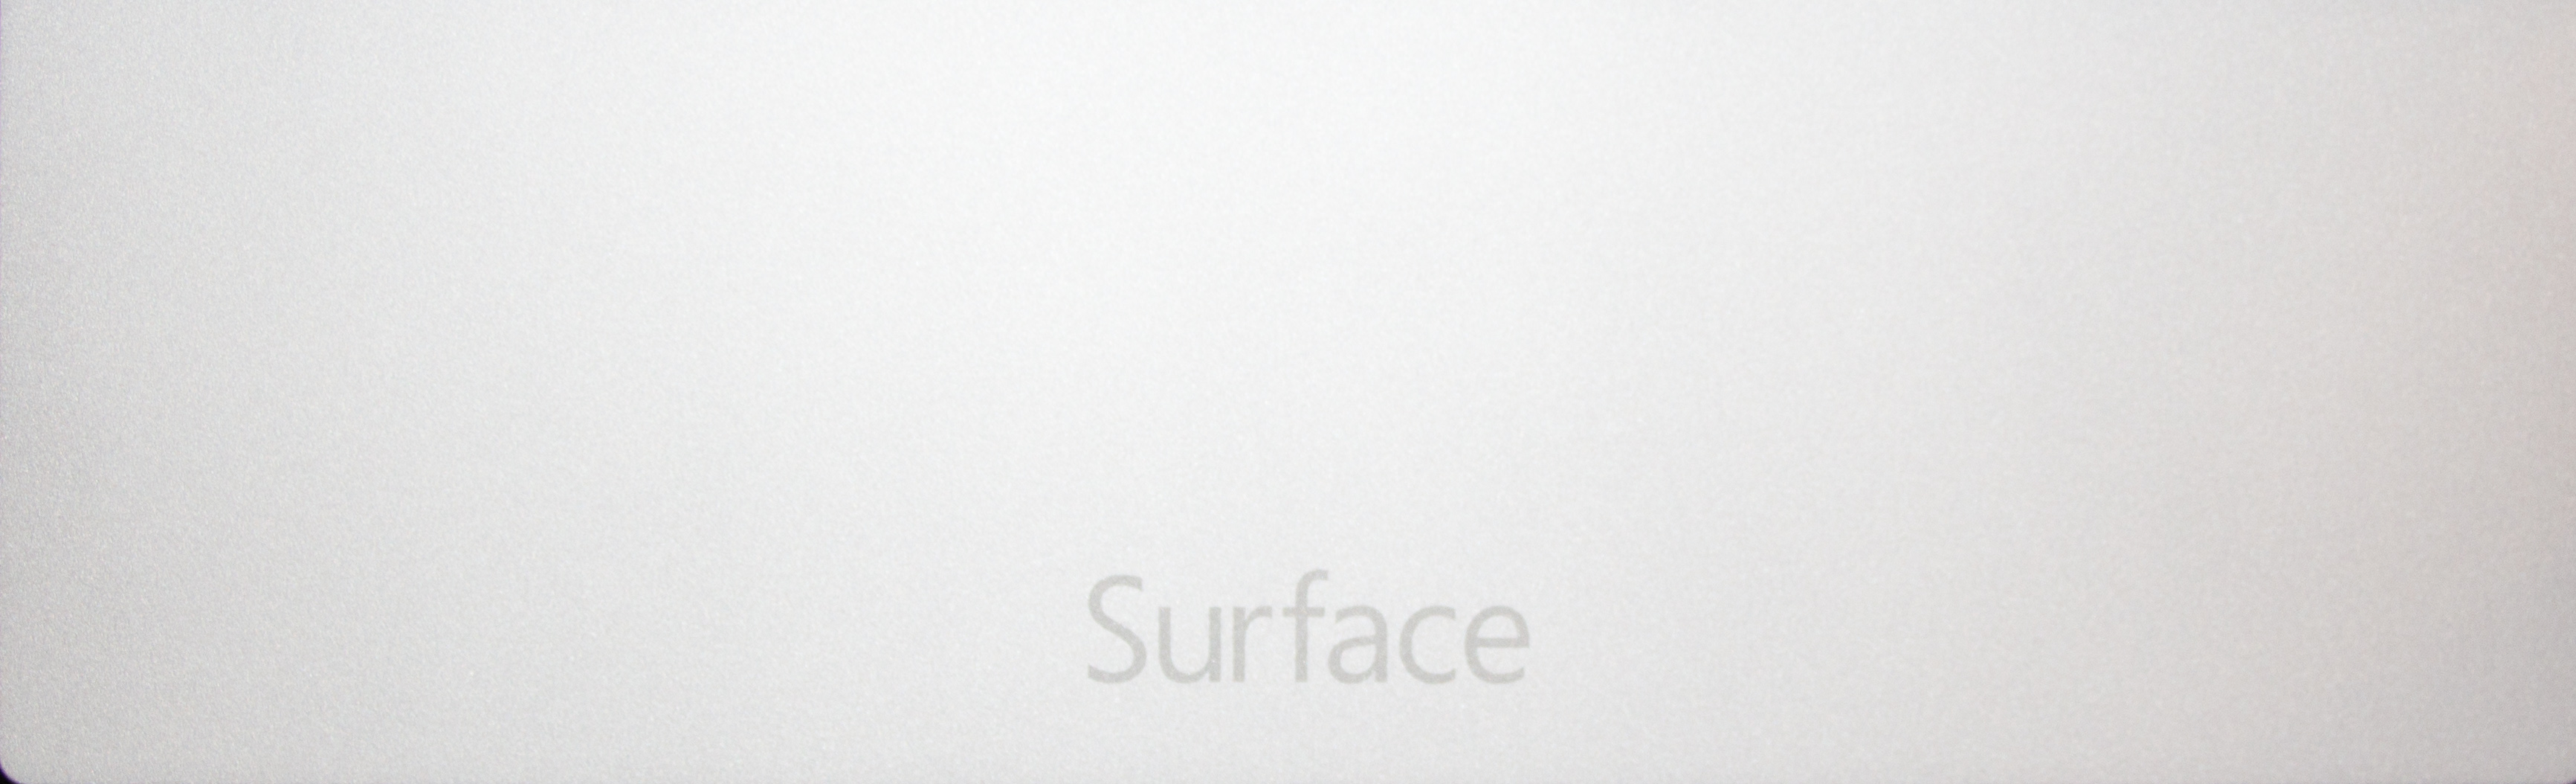 The Surface logo replaces the Windows logo on the back of the machine.